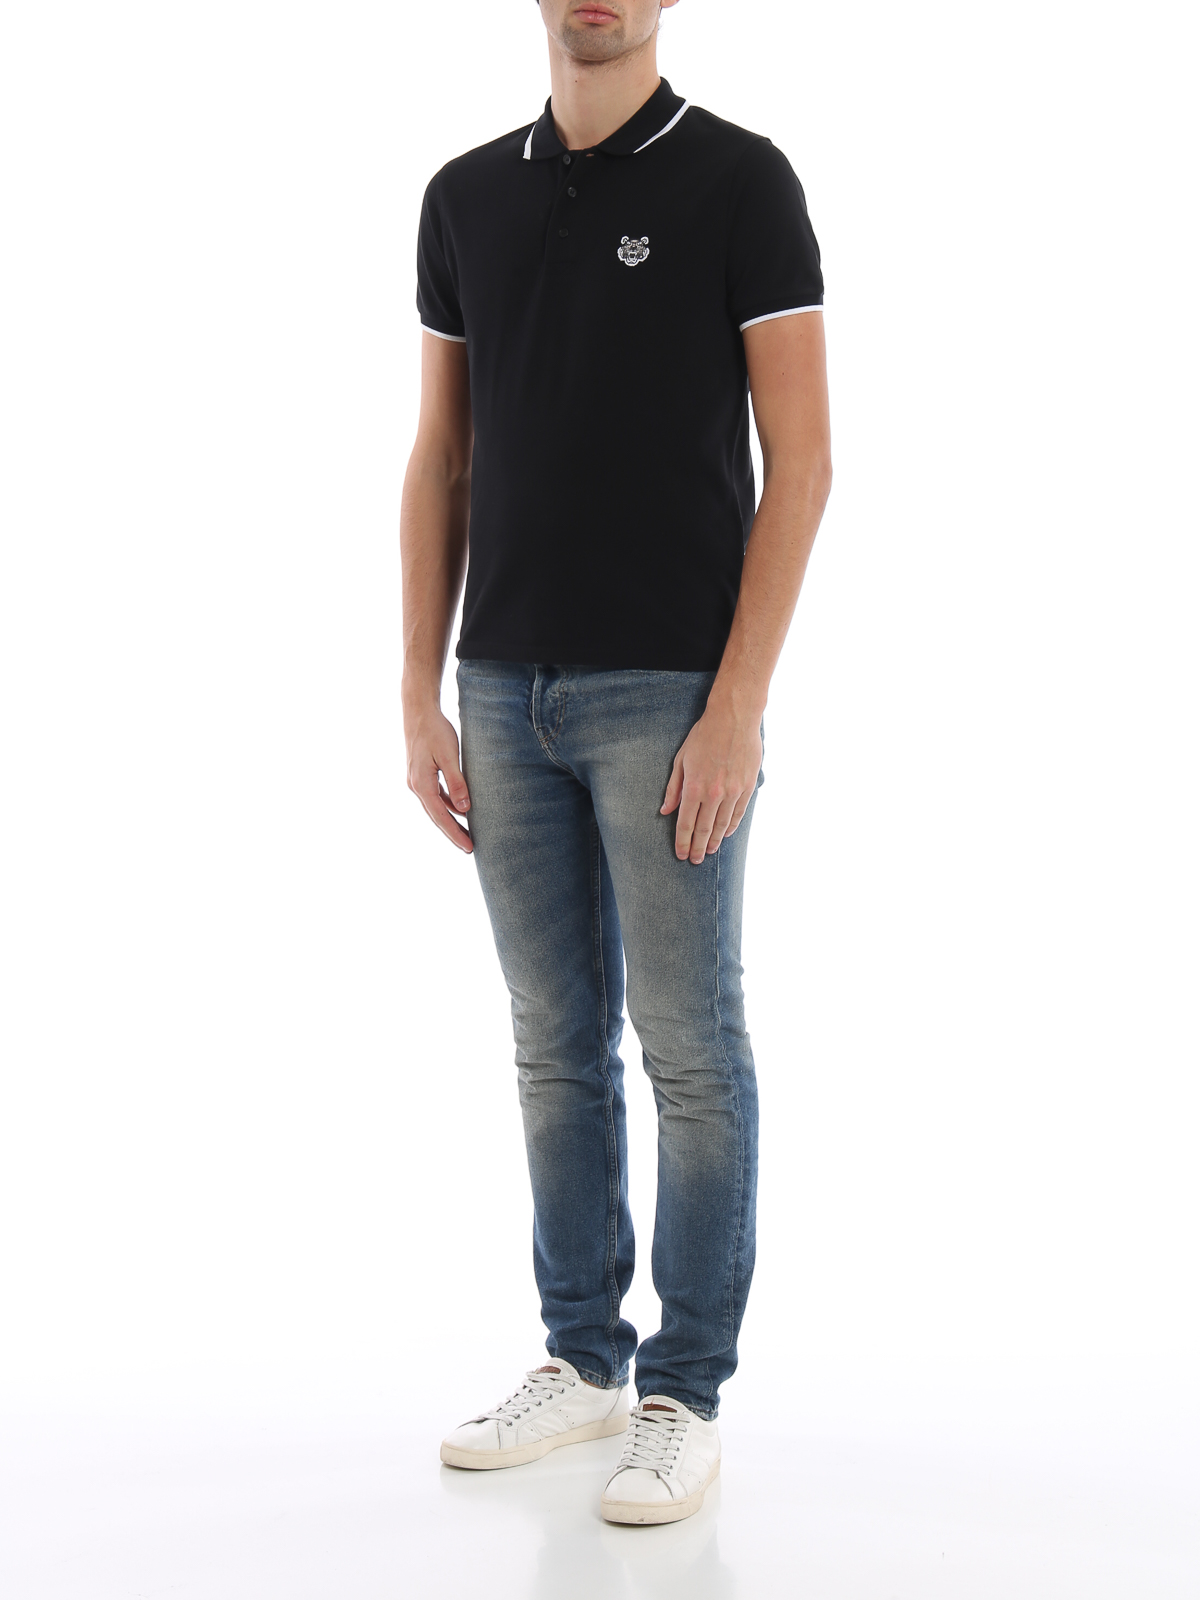 8ccdd492 Kenzo - K Fit Tiger crest black cotton polo shirt - polo shirts ...